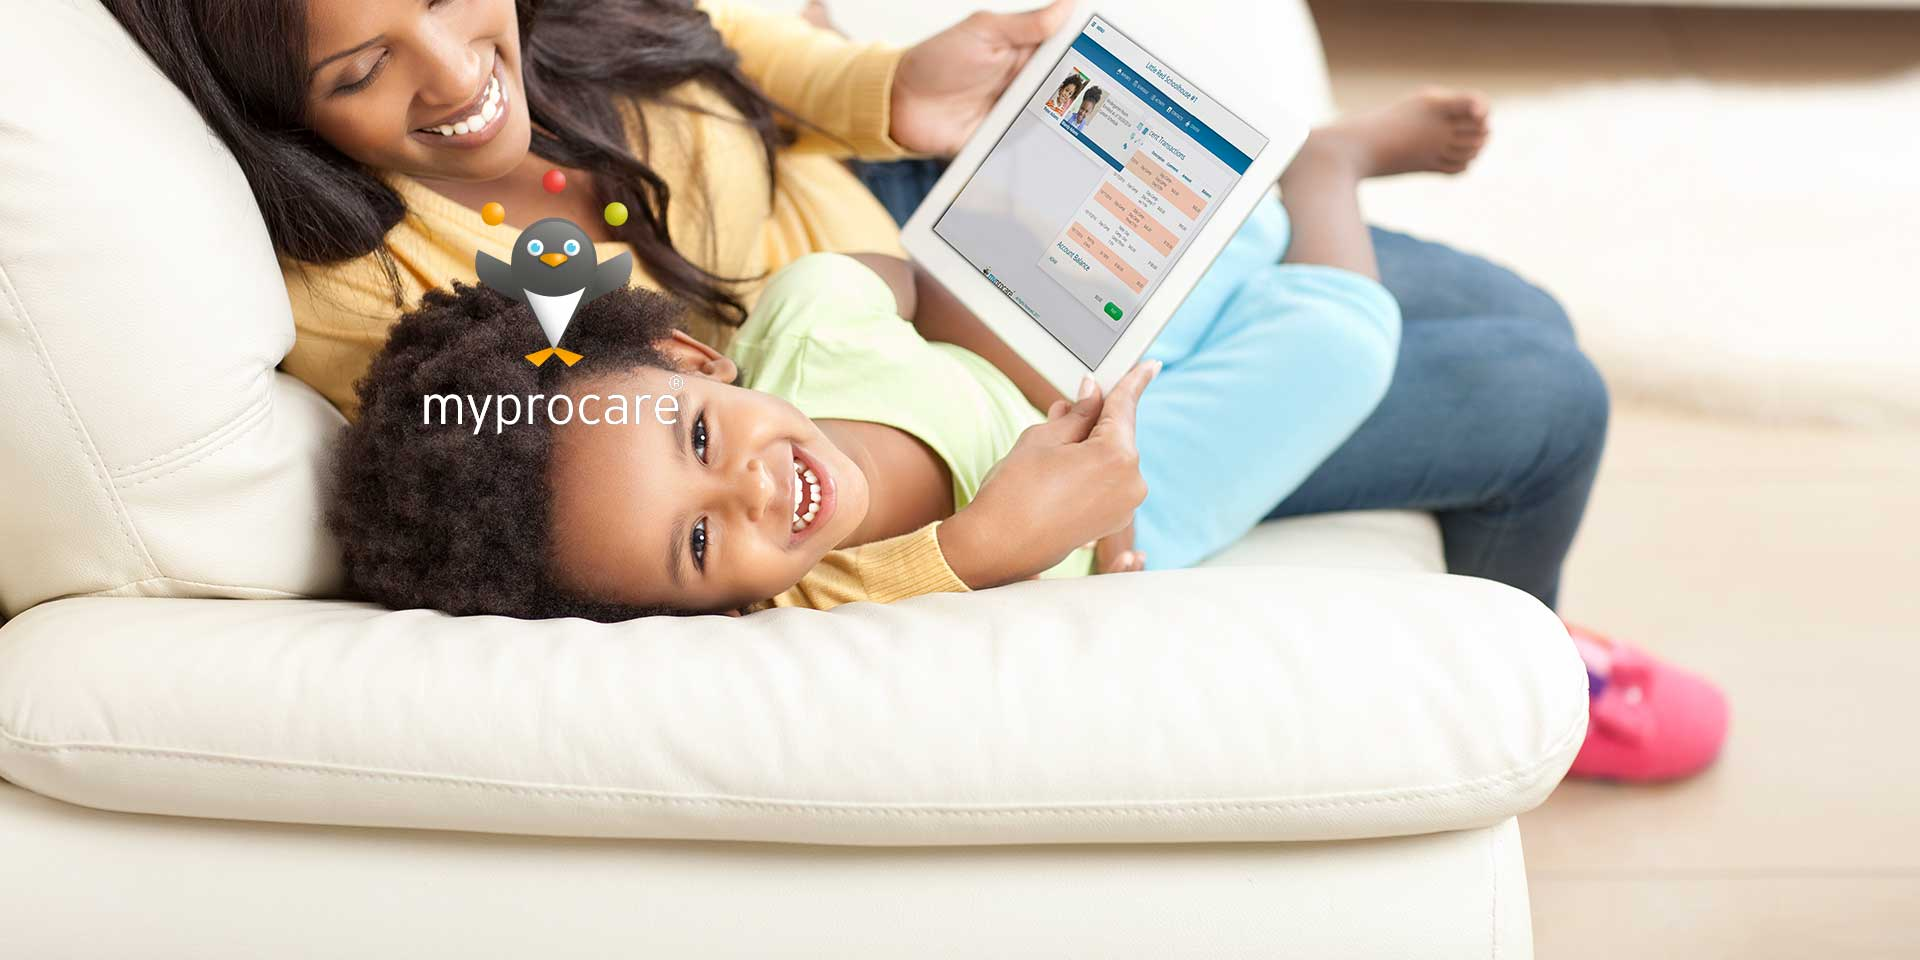 MyProcare - Easily engage families and offer mobile payment solutions with our online parent portal